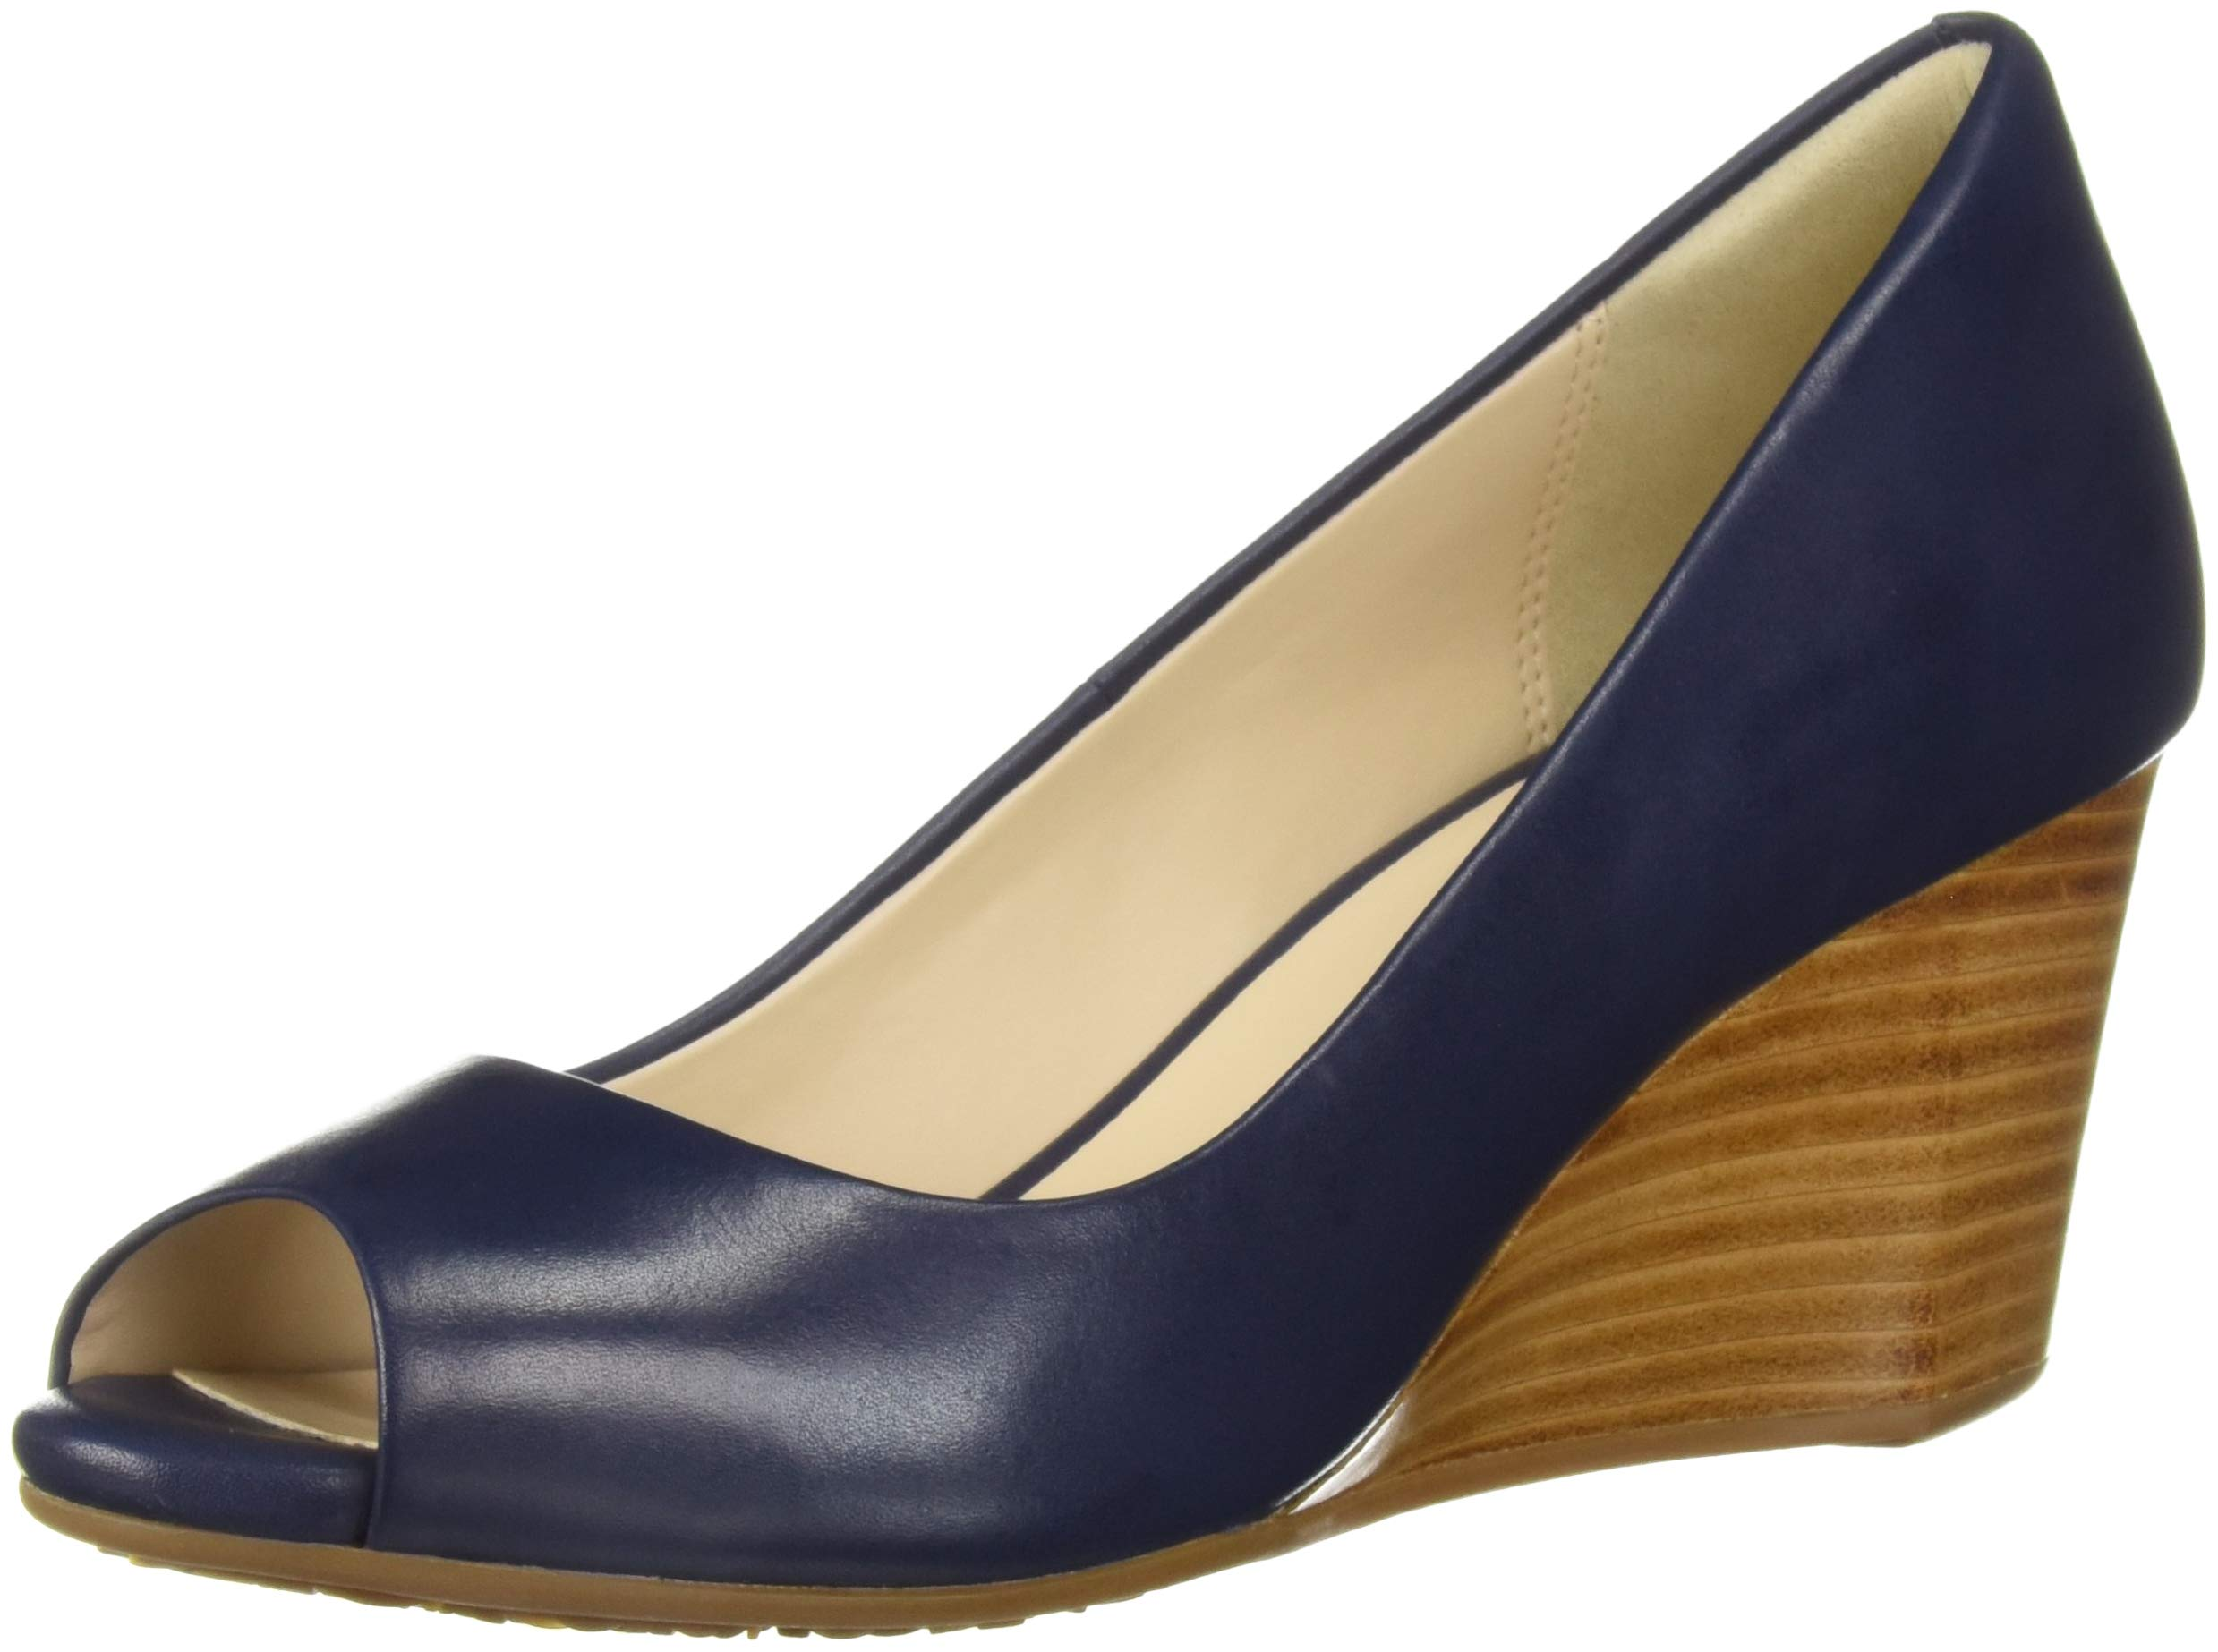 e5b75a5e8 Galleon - Cole Haan Women's Sadie OT Wedge 65MM Pump Marine Blue Leather 11 B  US